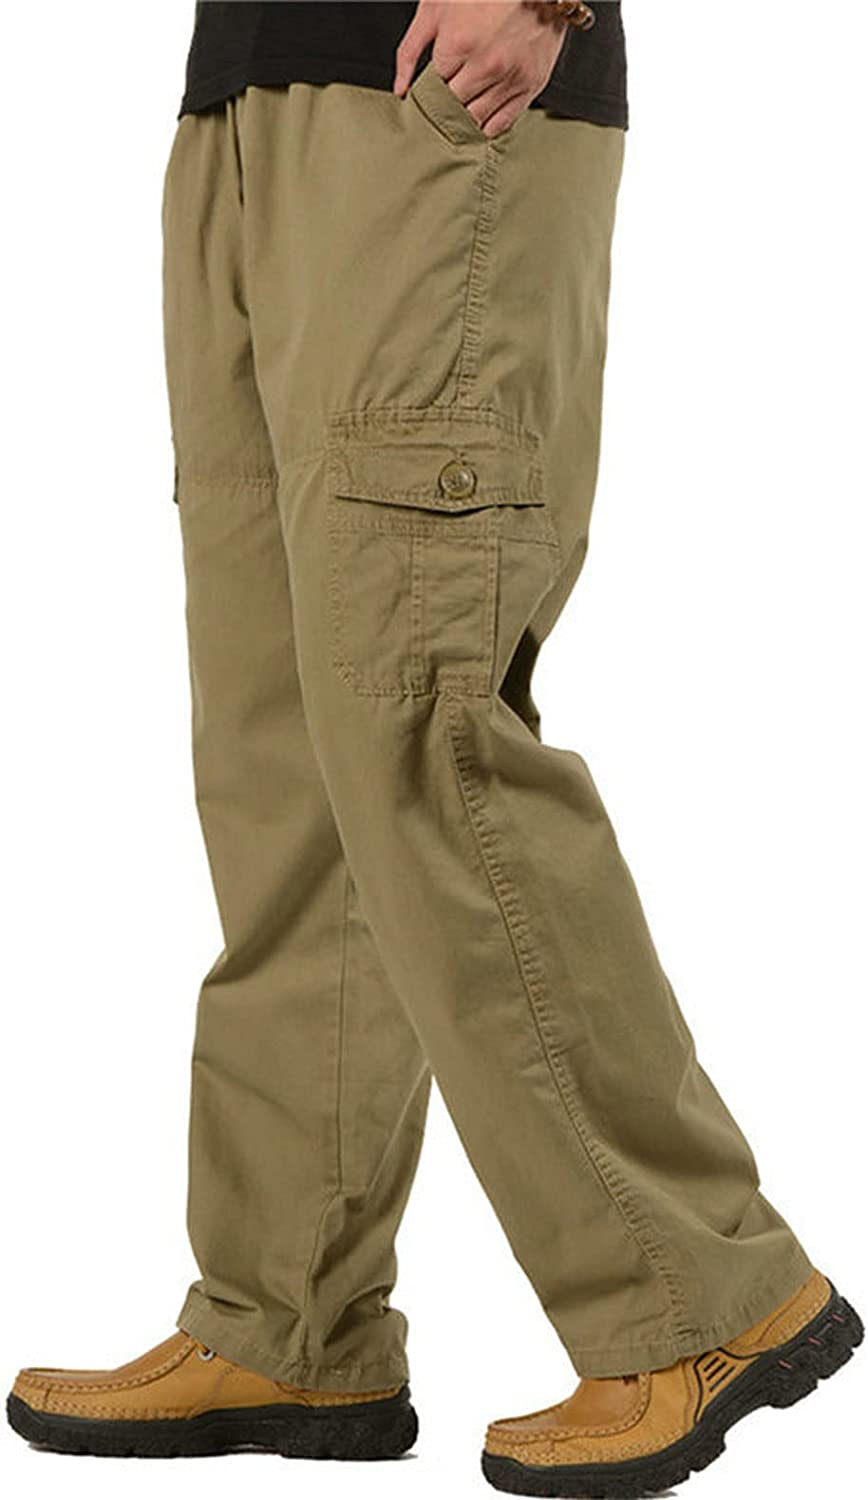 Raroauf Men's Full Elastic Waist Casual Cargo Pants Relaxed Fit Lightweight Pull On Work Pant